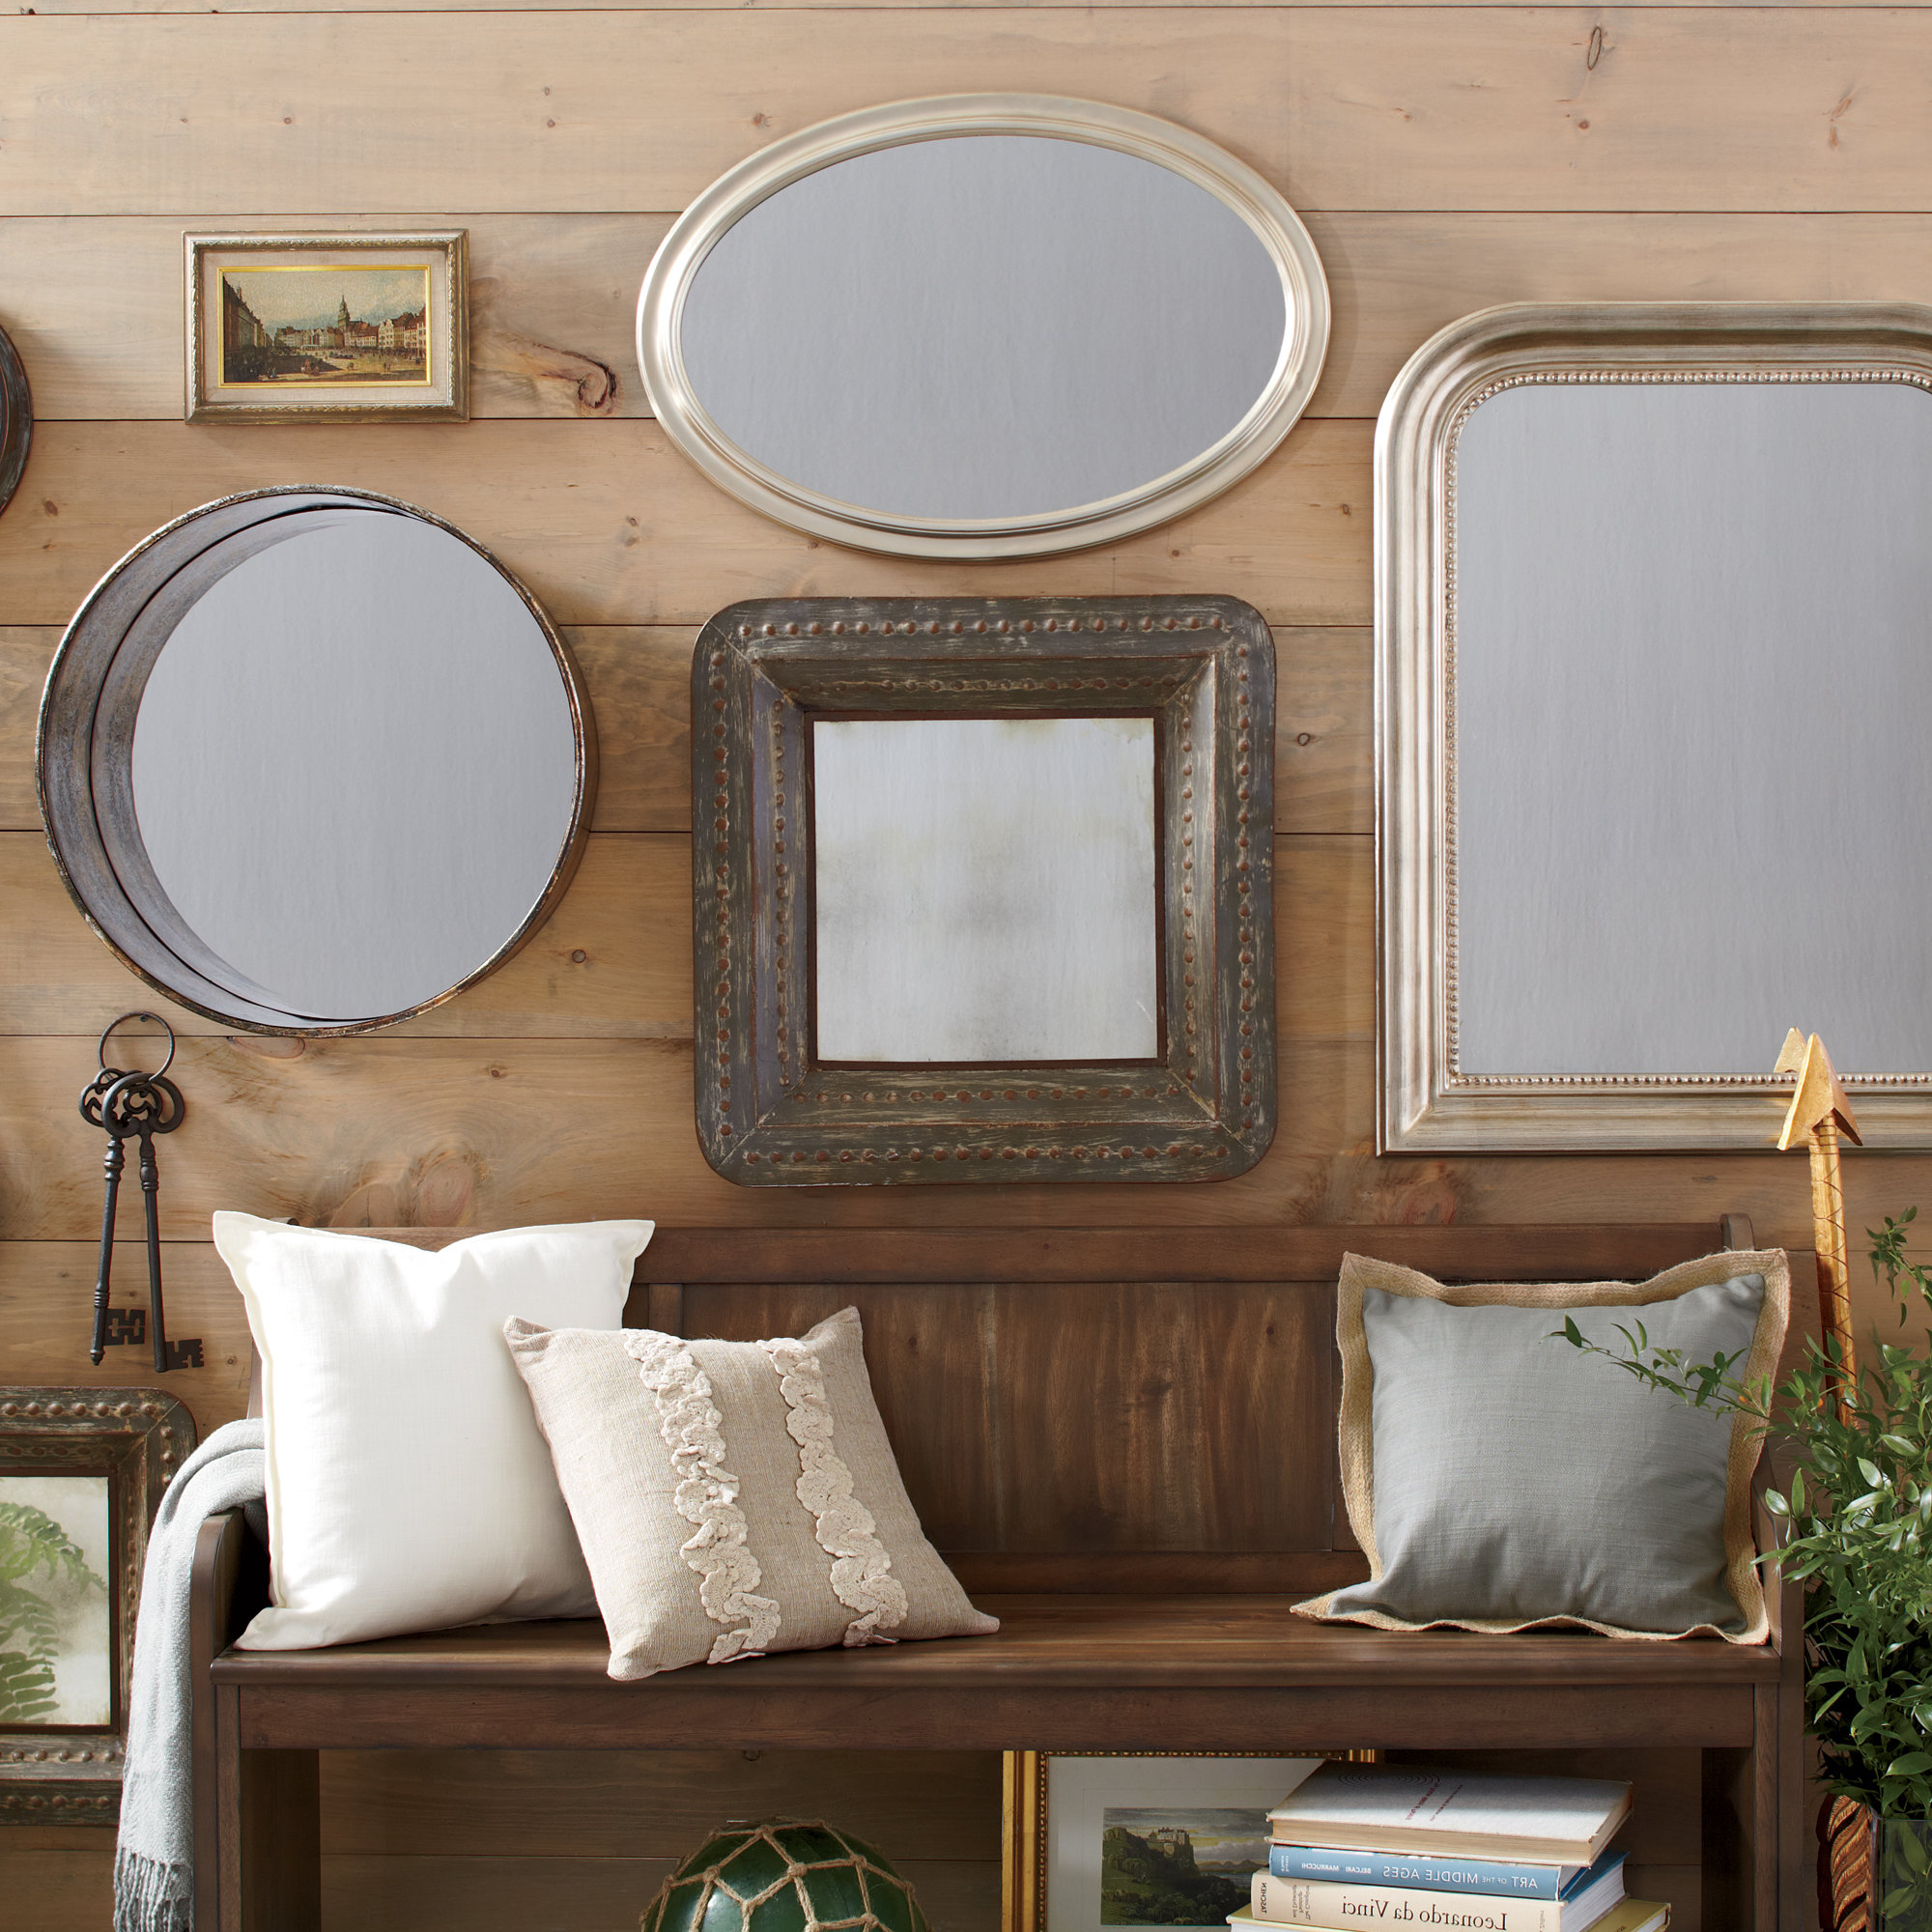 Best And Newest Aldusa 3 Piece Modern & Contemporary Distressed Accent Mirror Set Intended For Dekalb Modern & Contemporary Distressed Accent Mirrors (View 1 of 20)